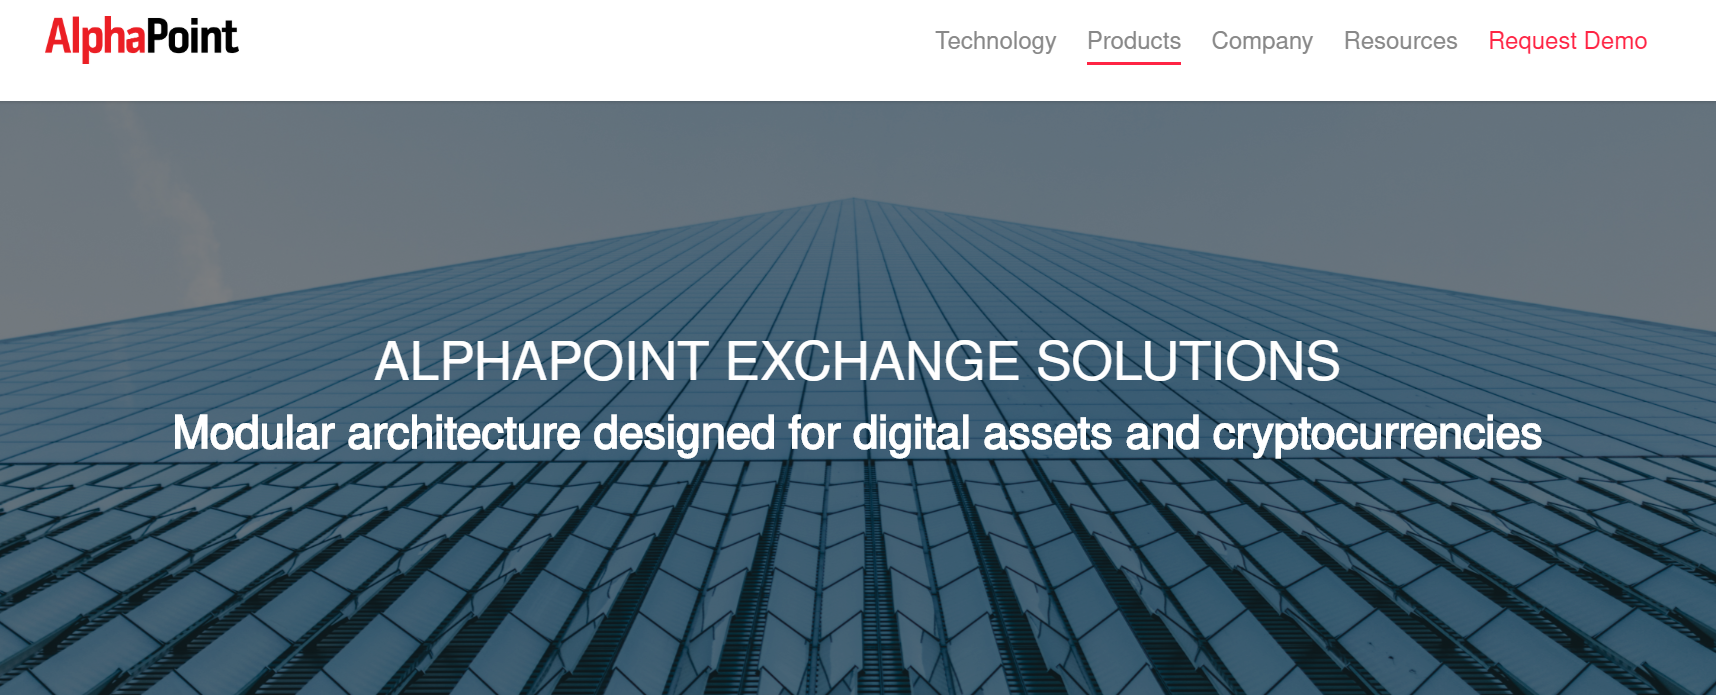 AlphaPoint Top Crypto Exchange Software Solutions